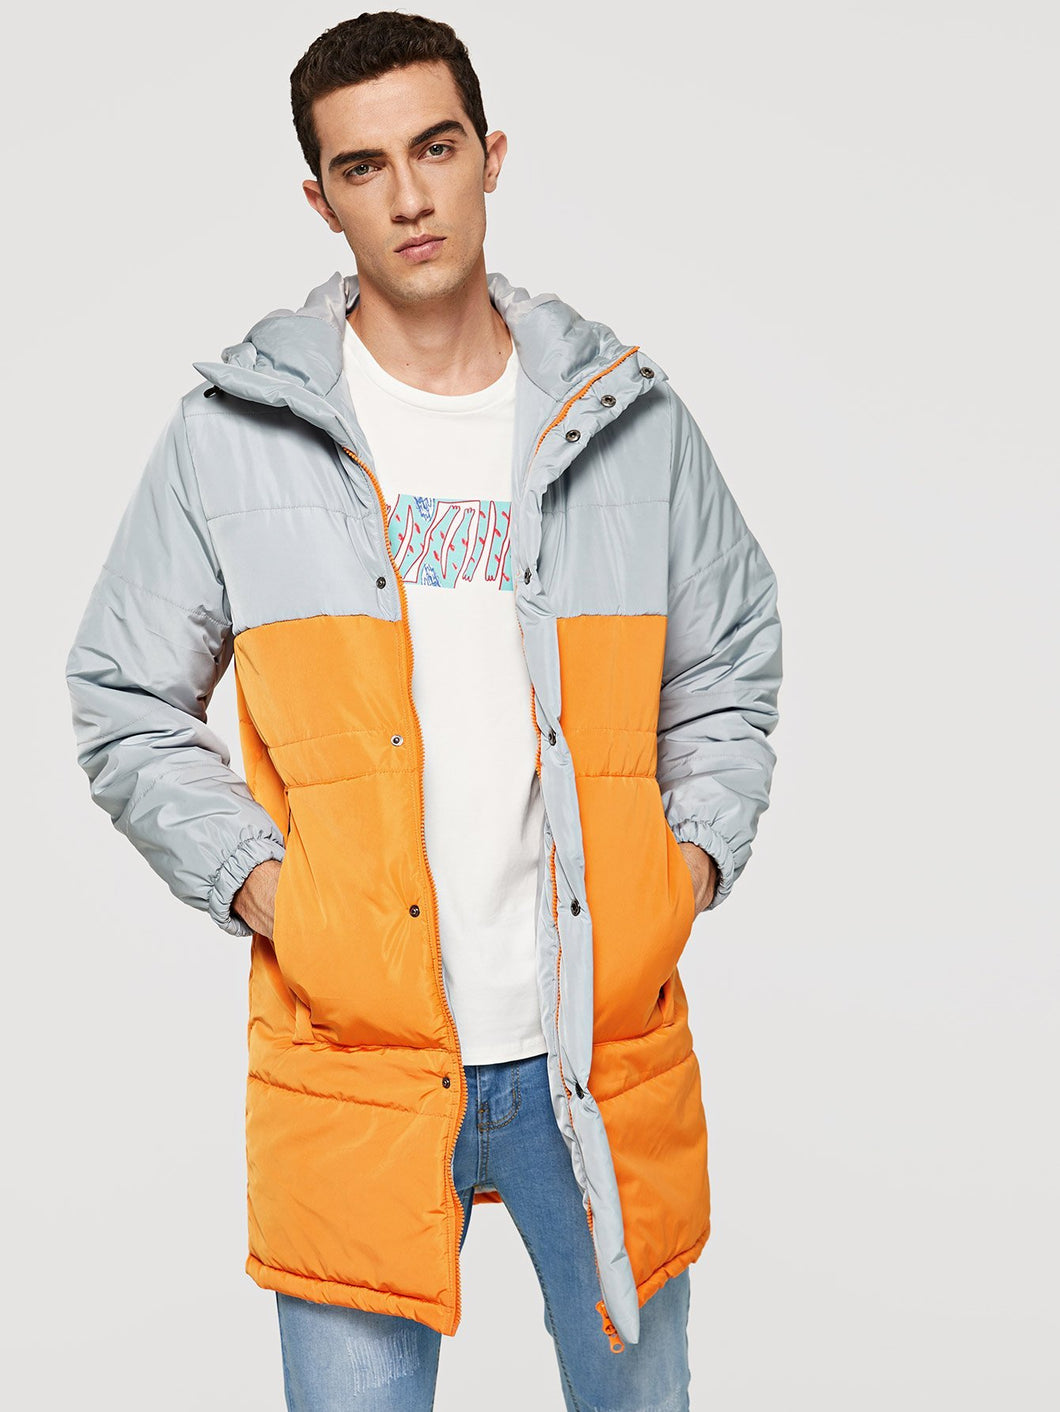 Men - Apparel - Outerwear - Jackets Men Cut and Sew Button Front Coat fashion clothing accessories shoes jewelry